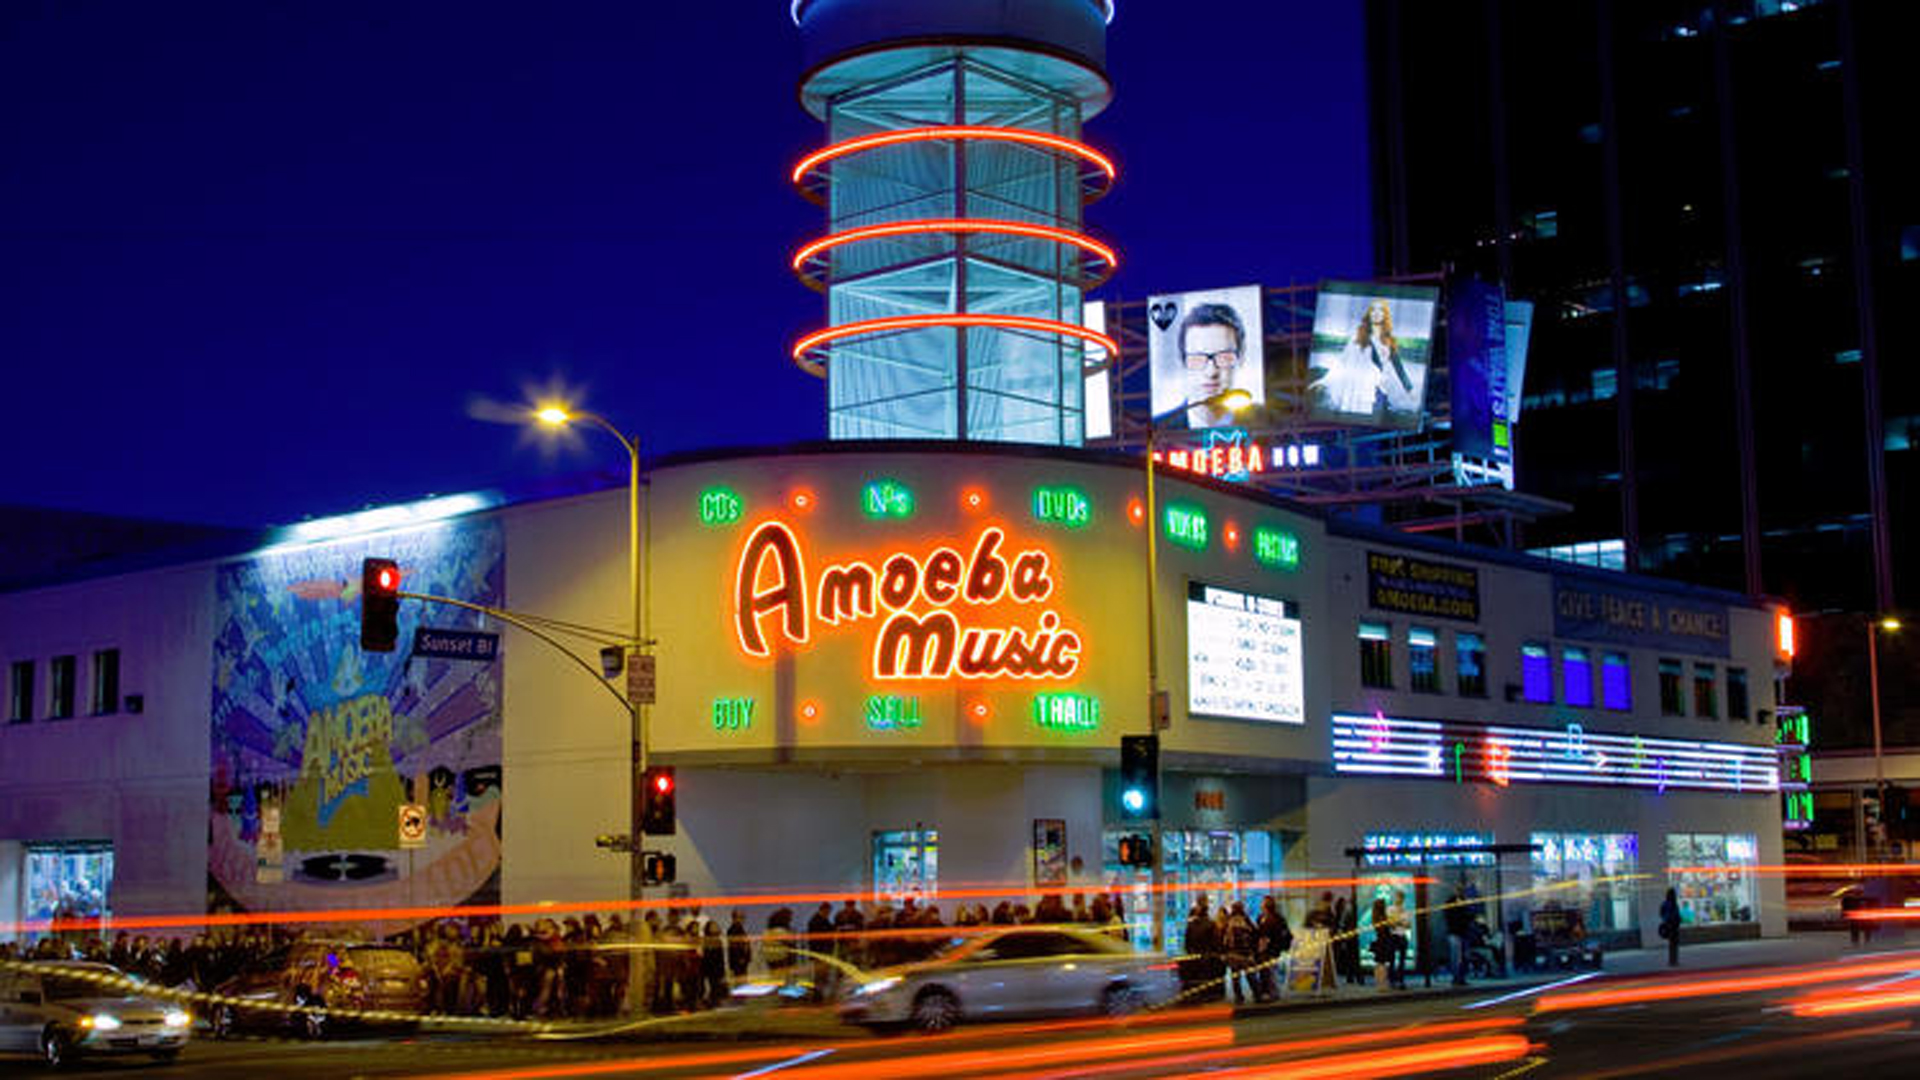 Amoeba Music on Sunset Boulevard is seen on Dec. 8, 2011. (Credit: Ricardo DeAratanha / Los Angeles Times)